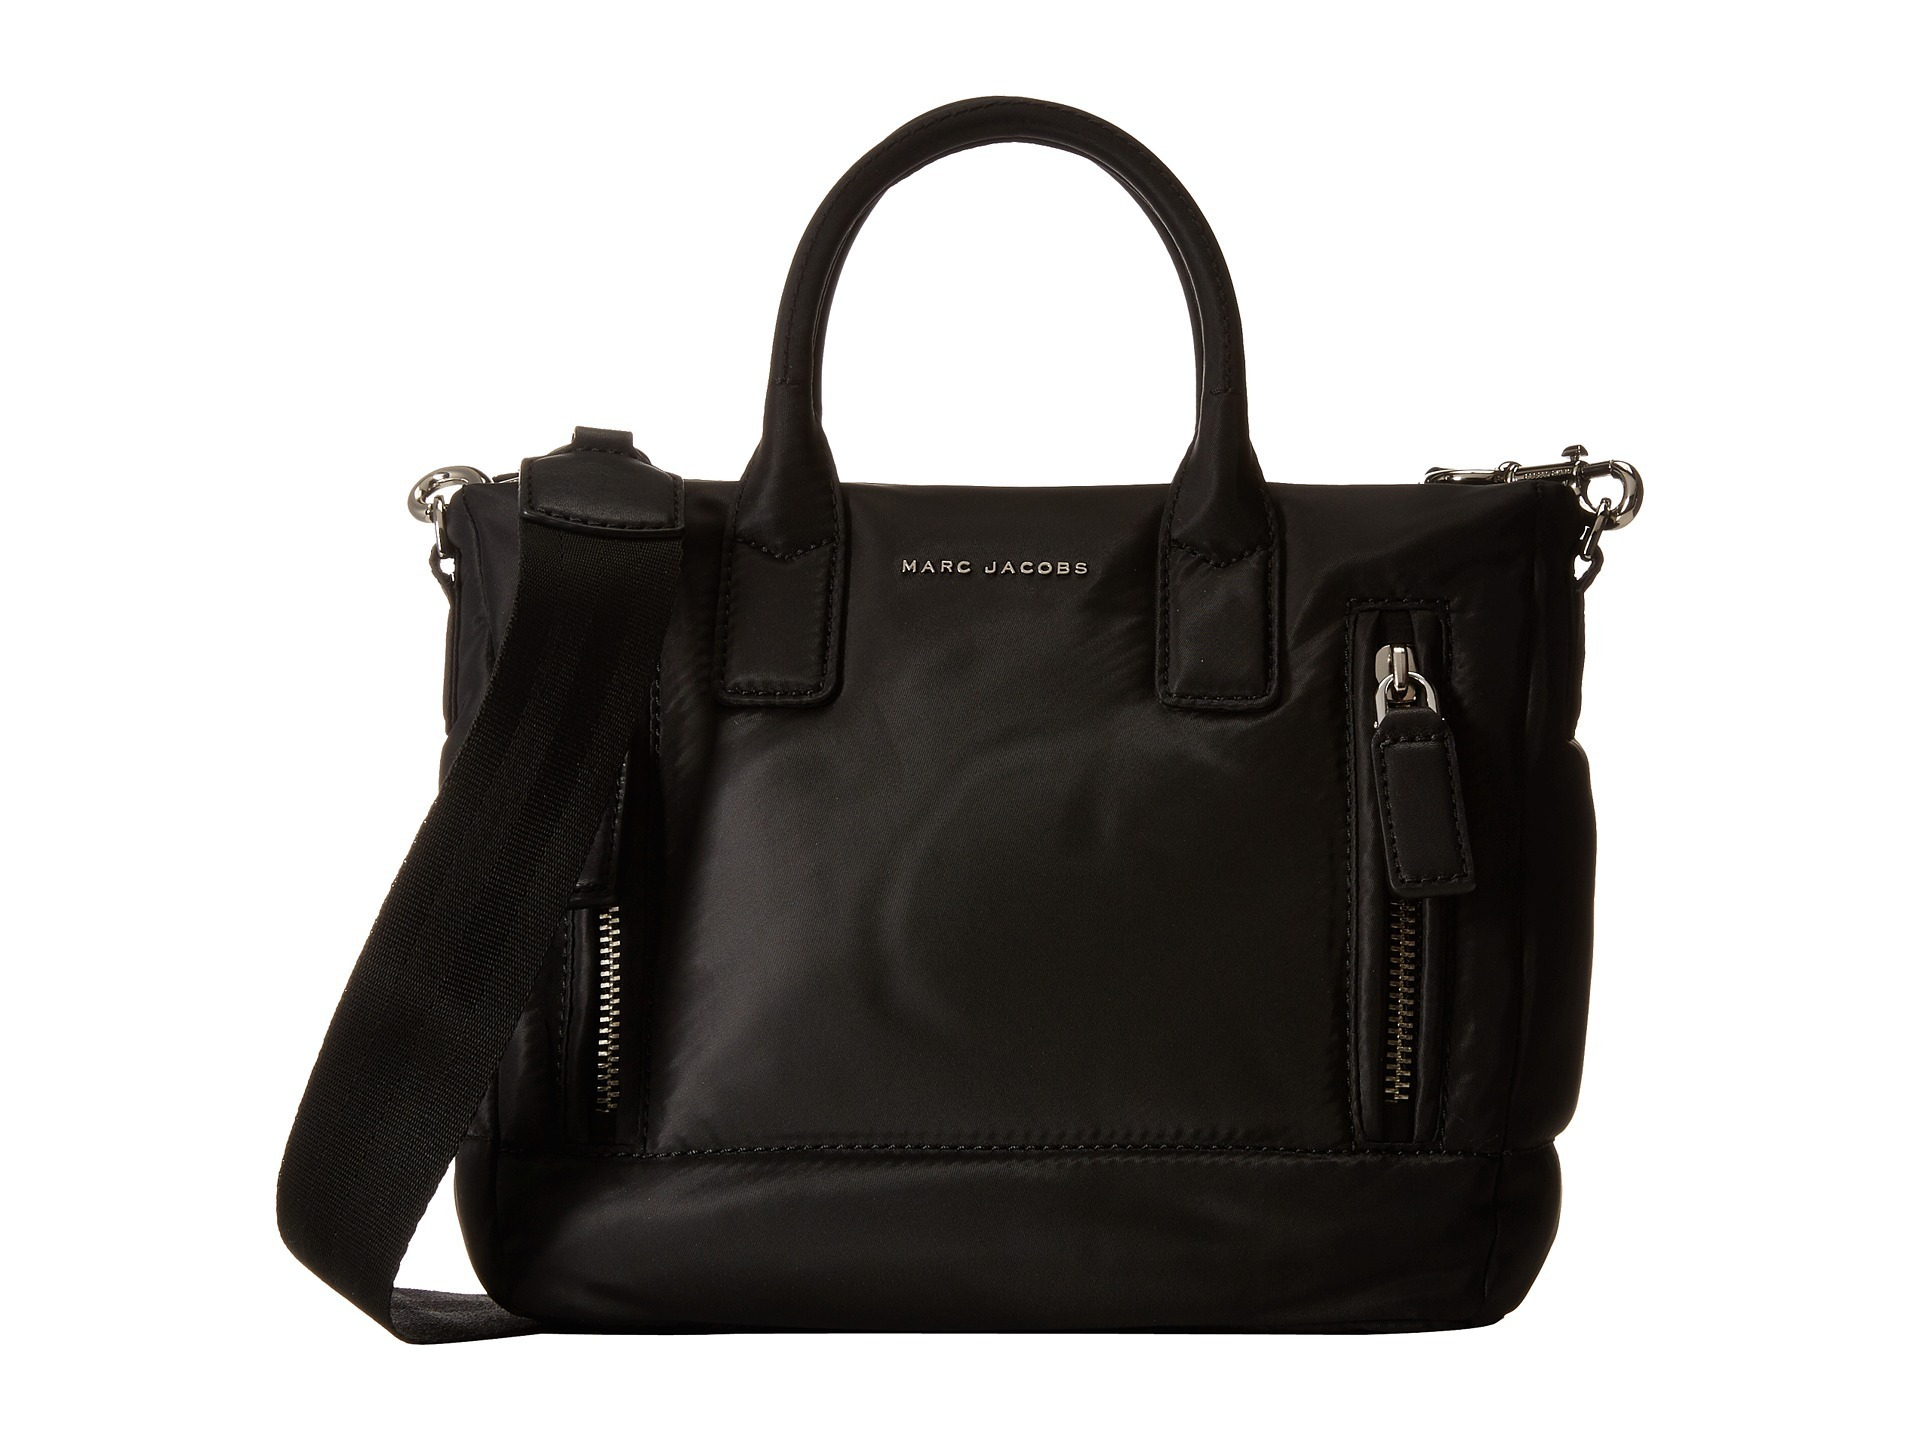 MARC JACOBS 正規品 大人気Mallorca Small Tote 送料無料